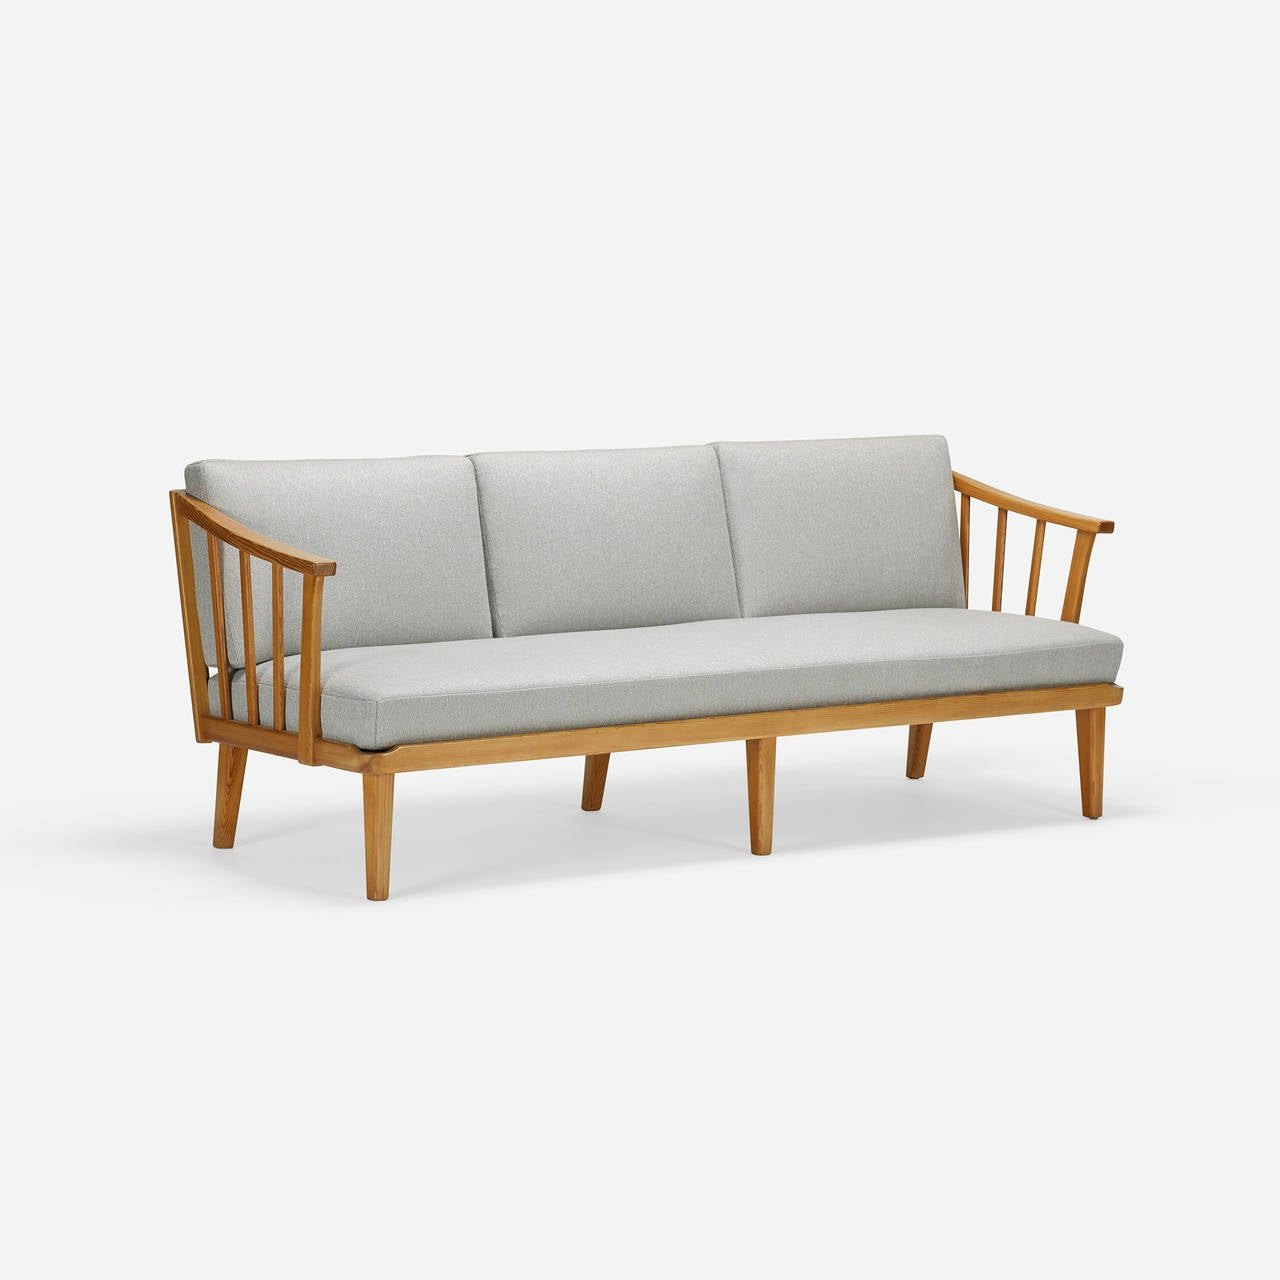 Sofa by carl malmsten at 1stdibs Carl malmsten sofa